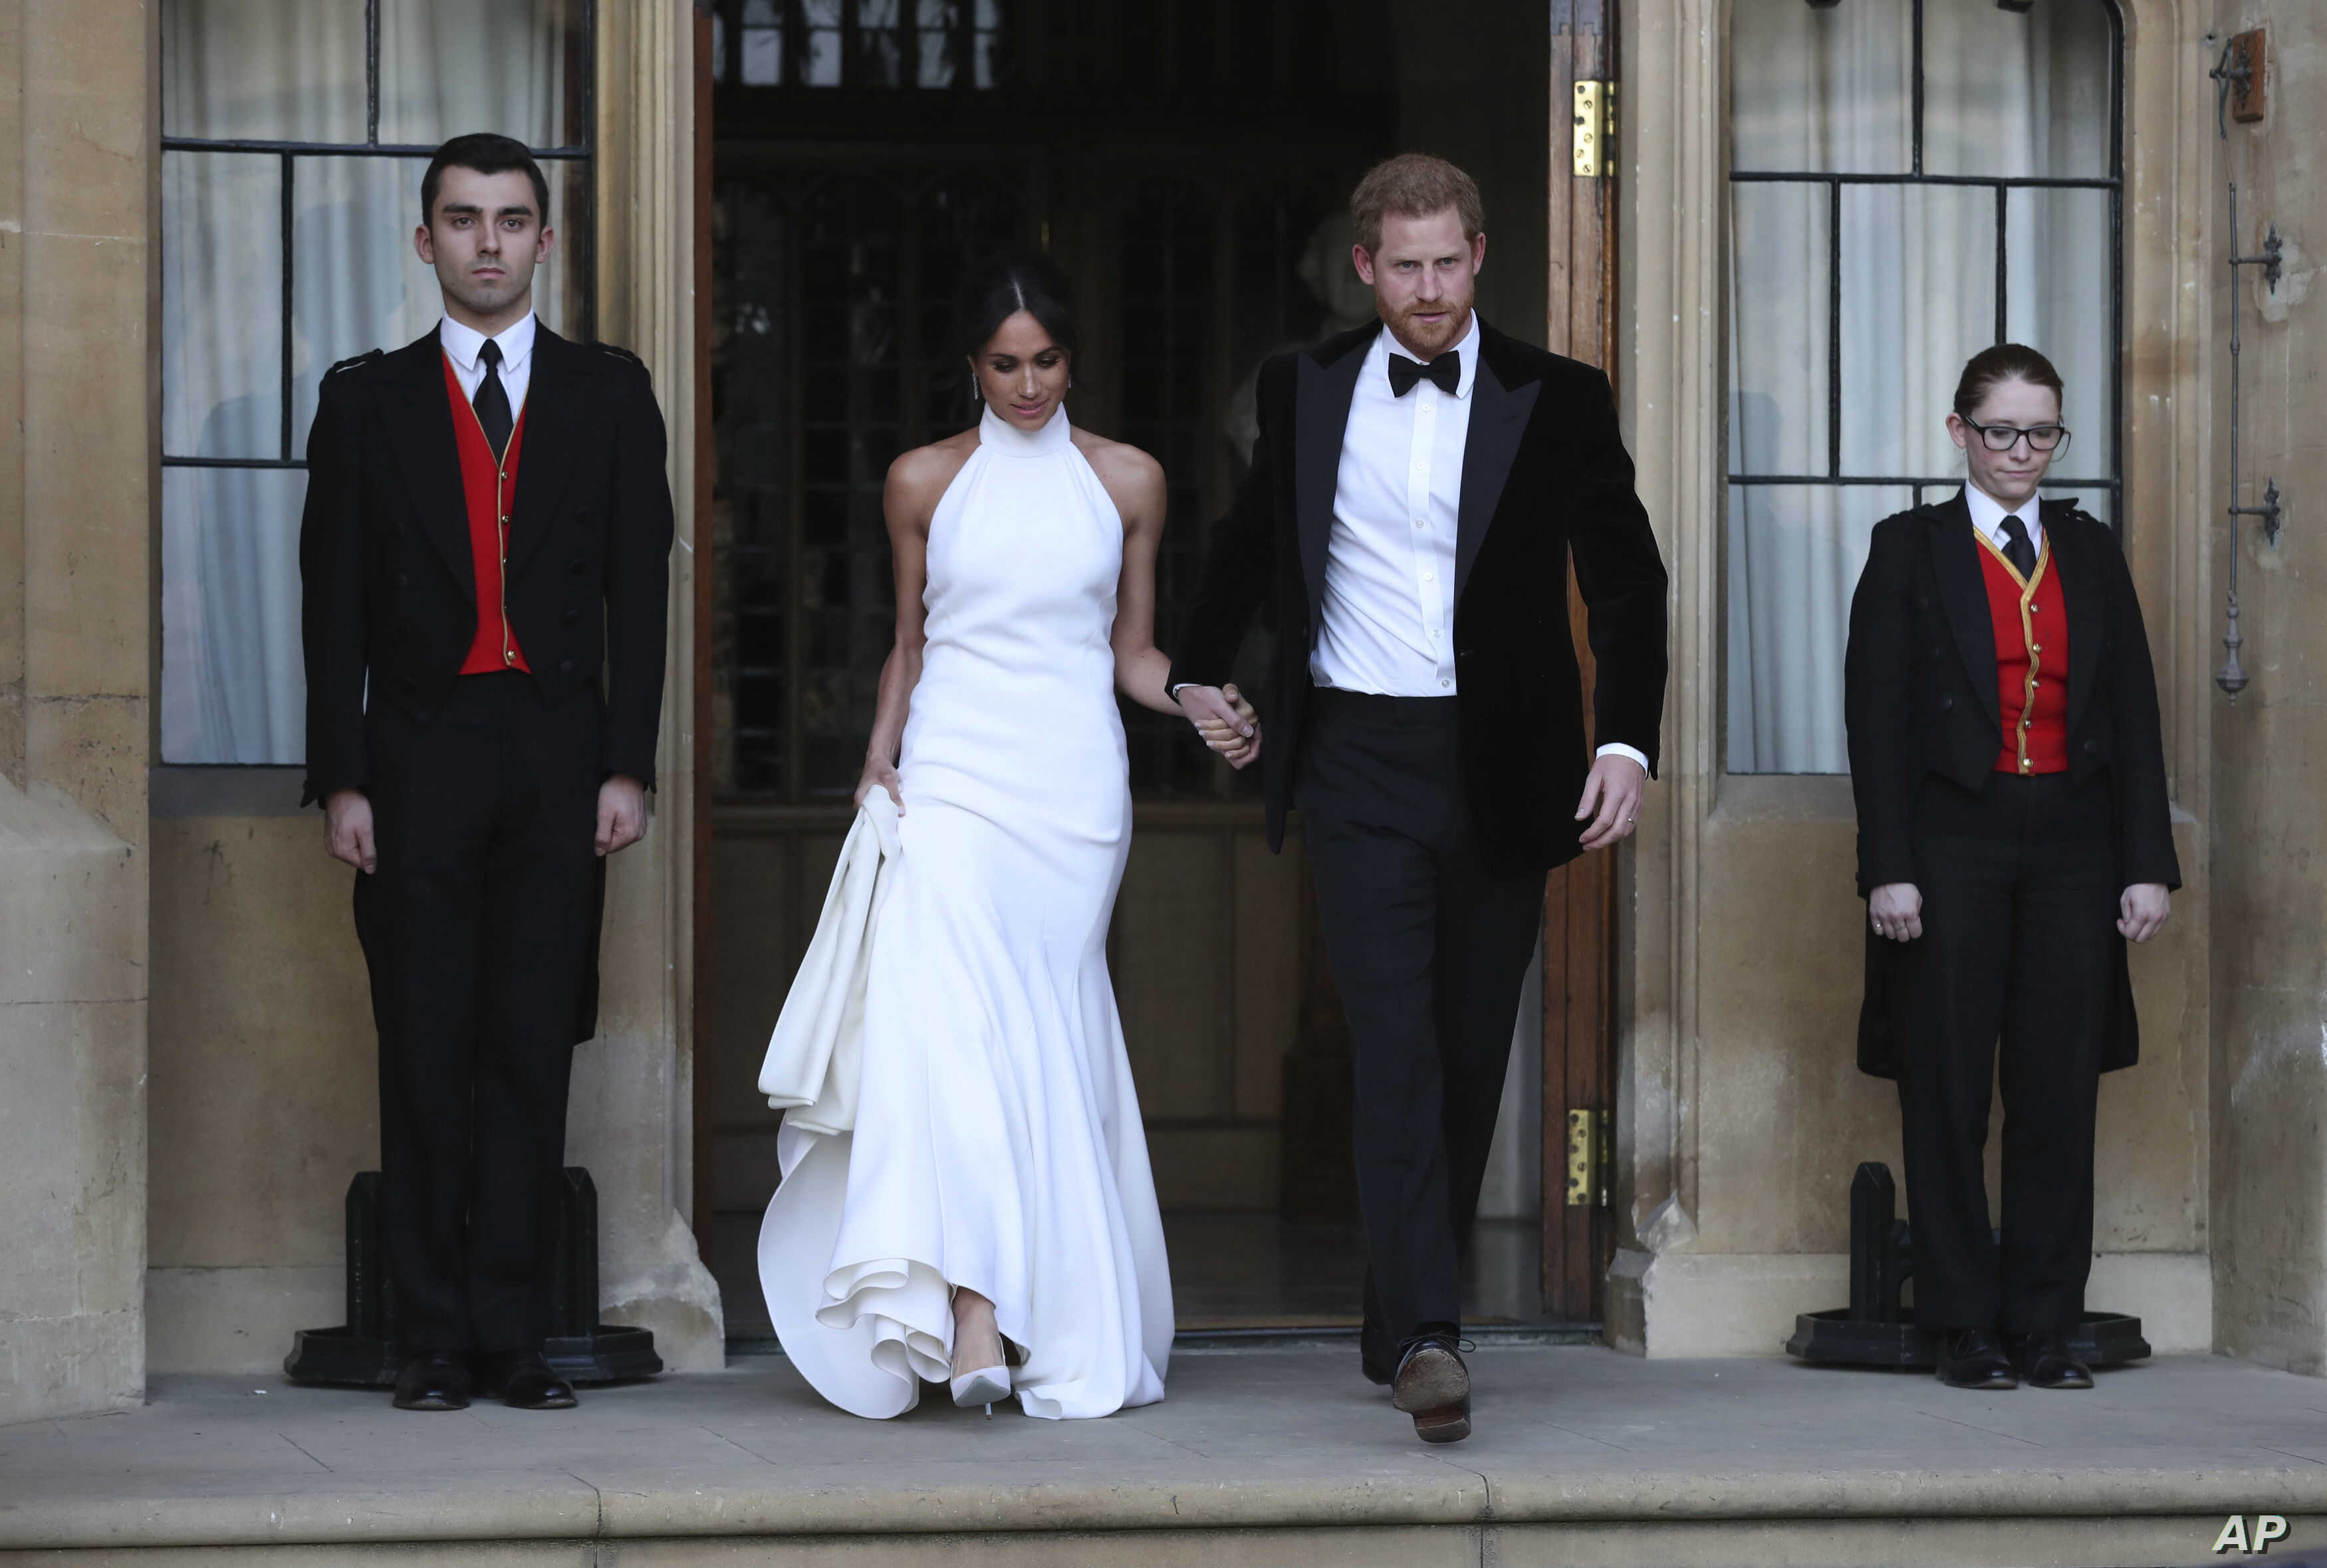 The newly married Duke and Duchess of Sussex, Meghan Markle and Prince Harry, leave Windsor Castle after their wedding in Windsor, to attend an evening reception at Frogmore House, hosted by the Prince of Wales, May 19, 2018.